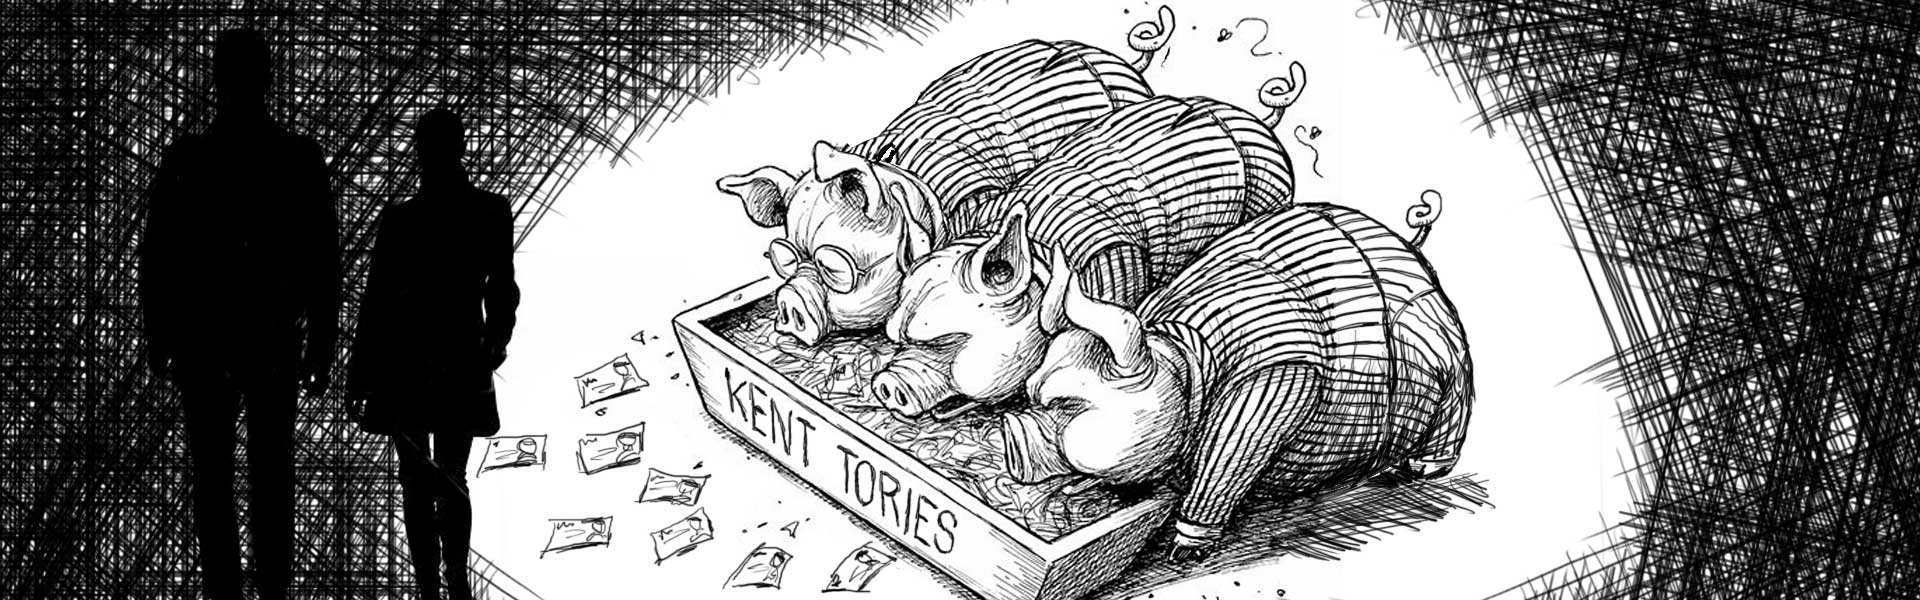 Tory pigs. Thanet shadows. Illustration adapted from an original by Adam Zyglis / Buffalo News